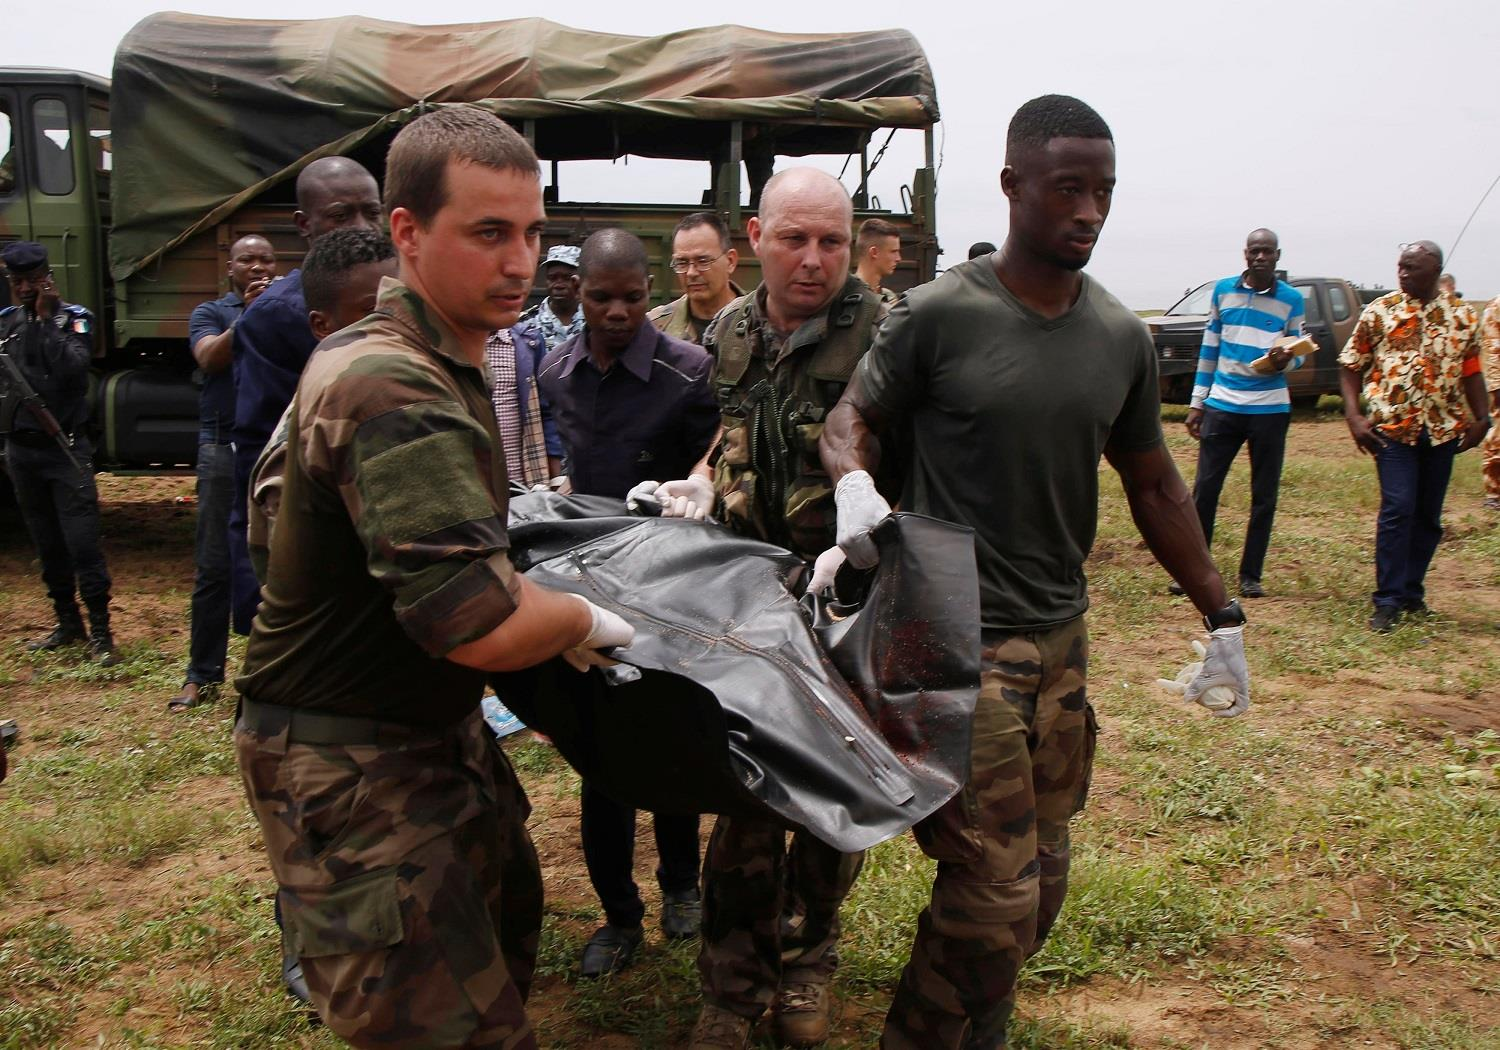 French soldiers and rescuers carry a body after a propeller-engine cargo plane crashed into the sea near the international airport in Ivory Coast's main city, Abidjan.